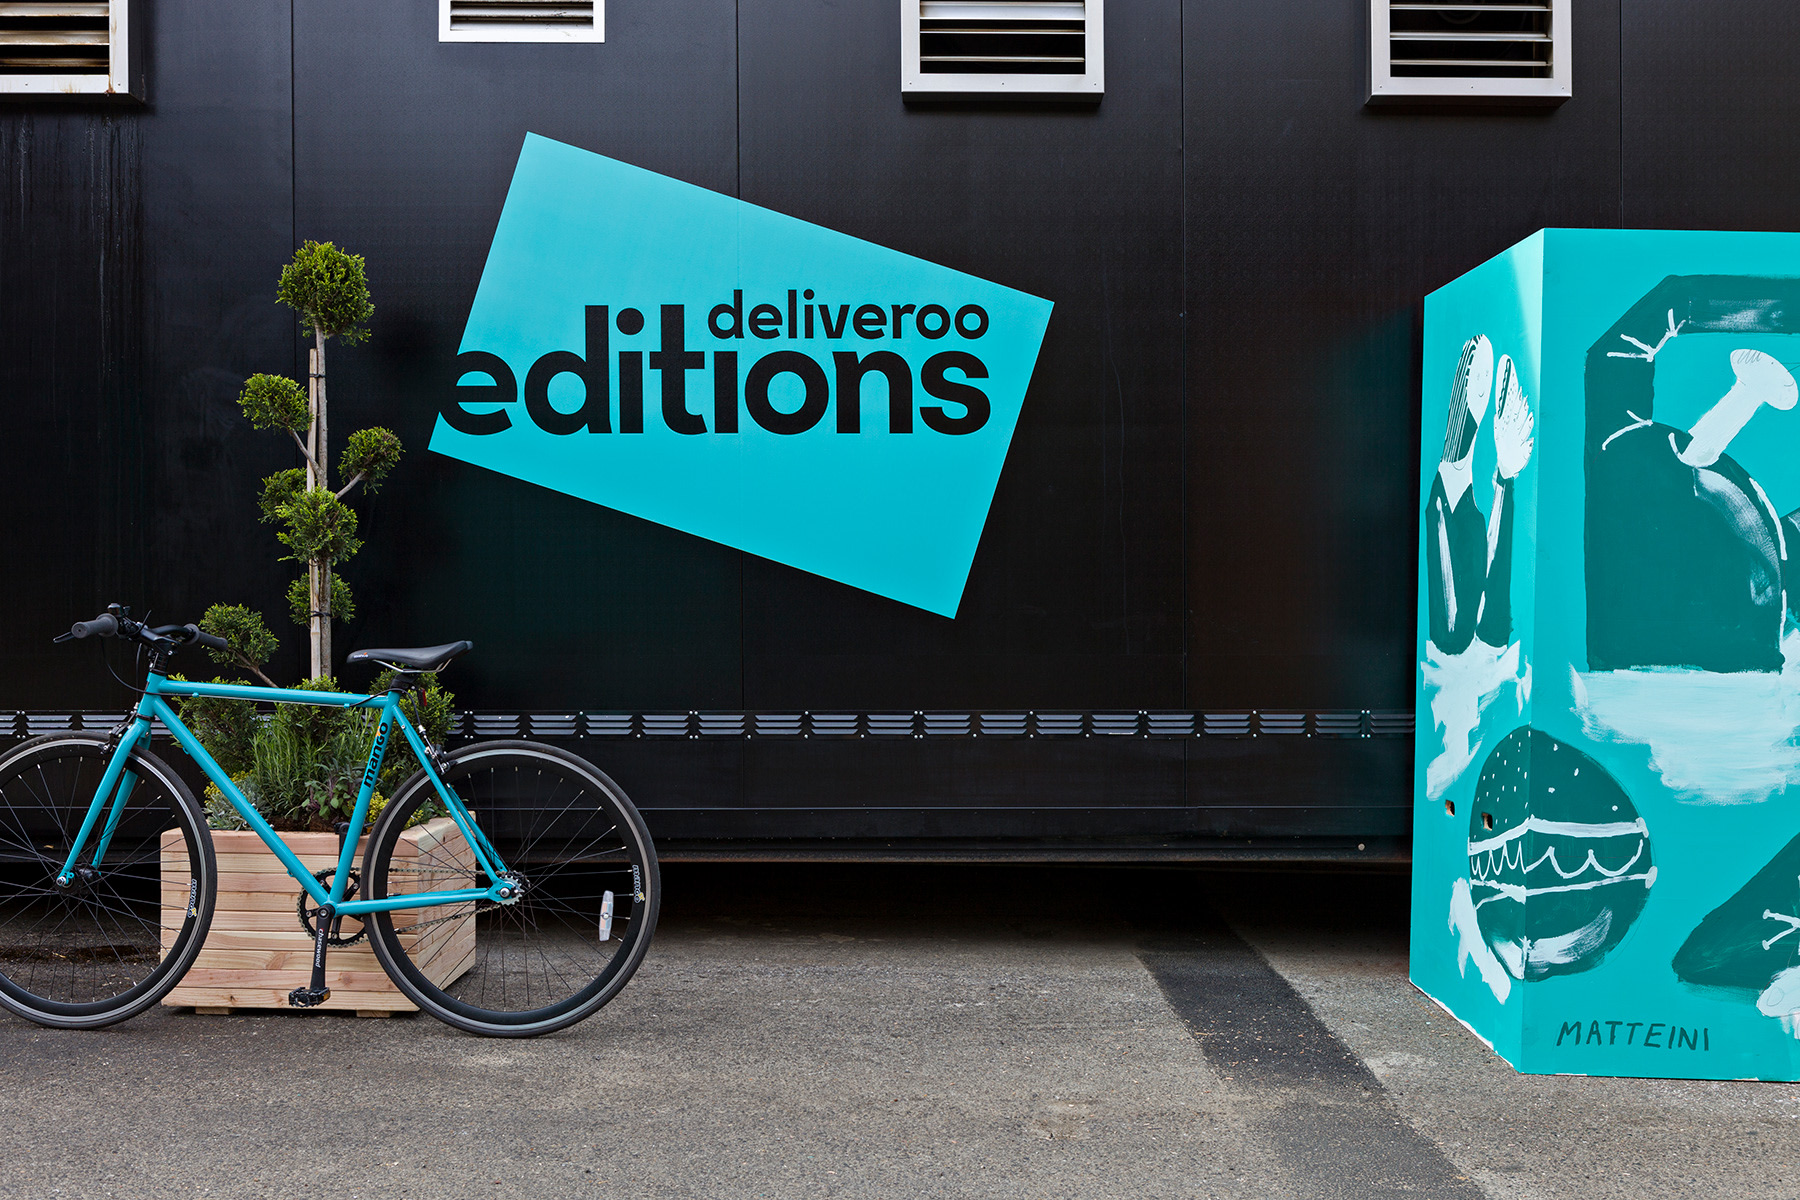 Deliveroo builds its own kitchens to help restaurants expand